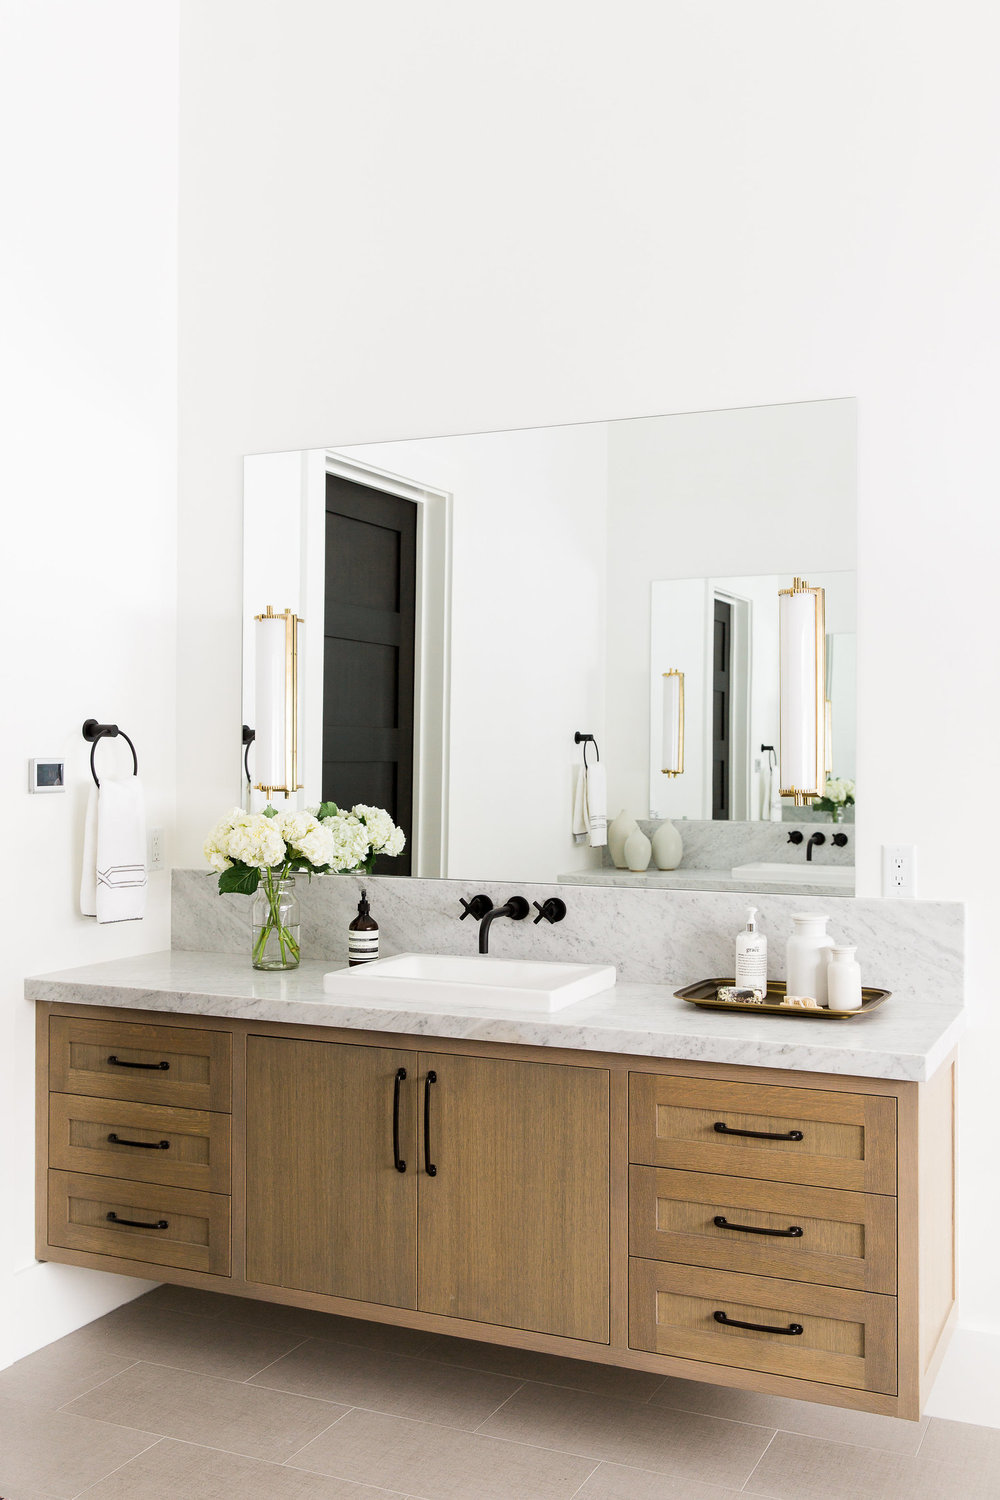 Natural+Wood+Floating+Vanity+and+matte+black+fixtures+||+Studio+McGee.jpg